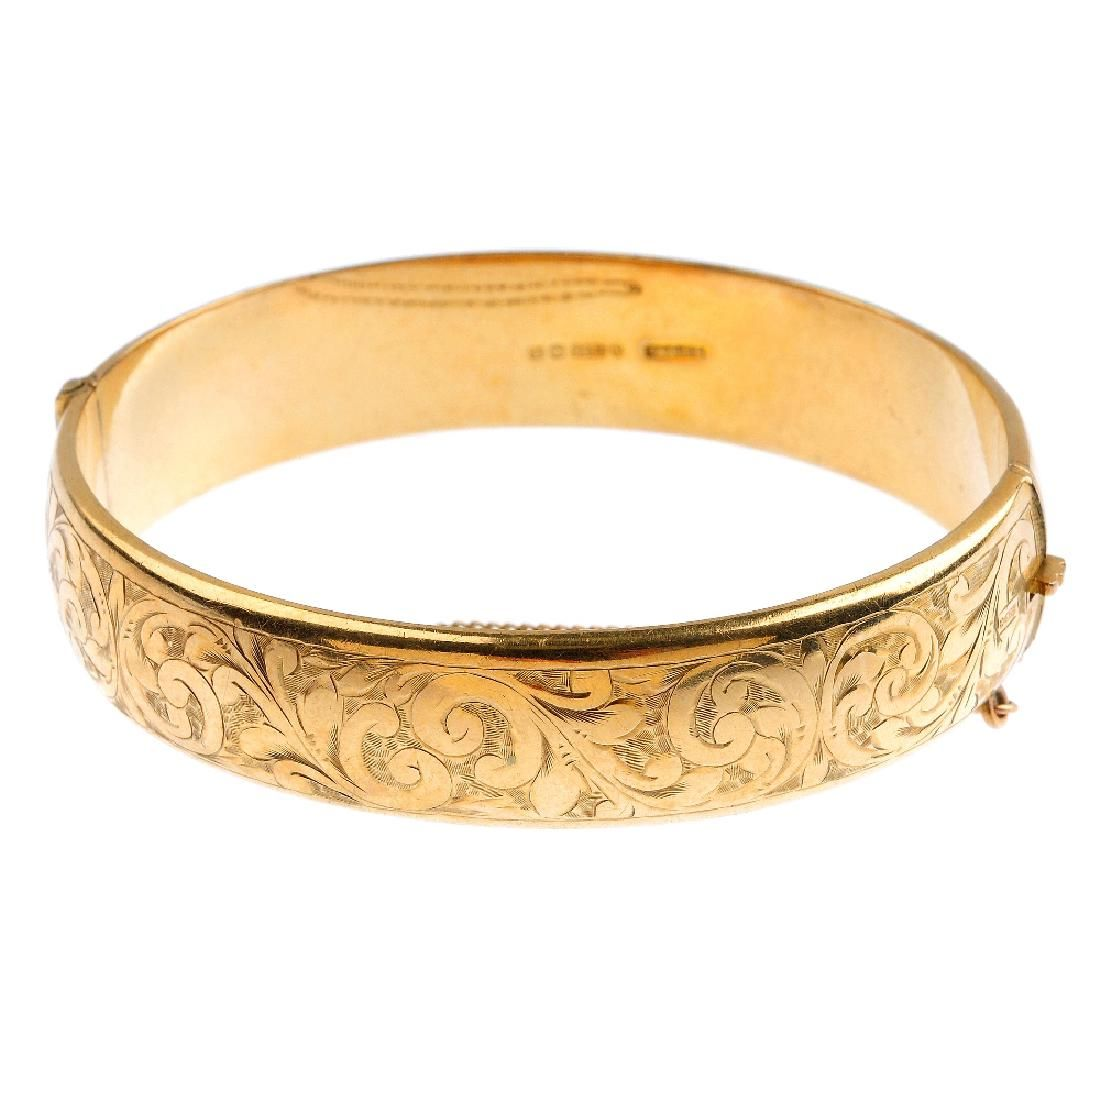 A mid 20th century 9ct gold hinged bangle. With